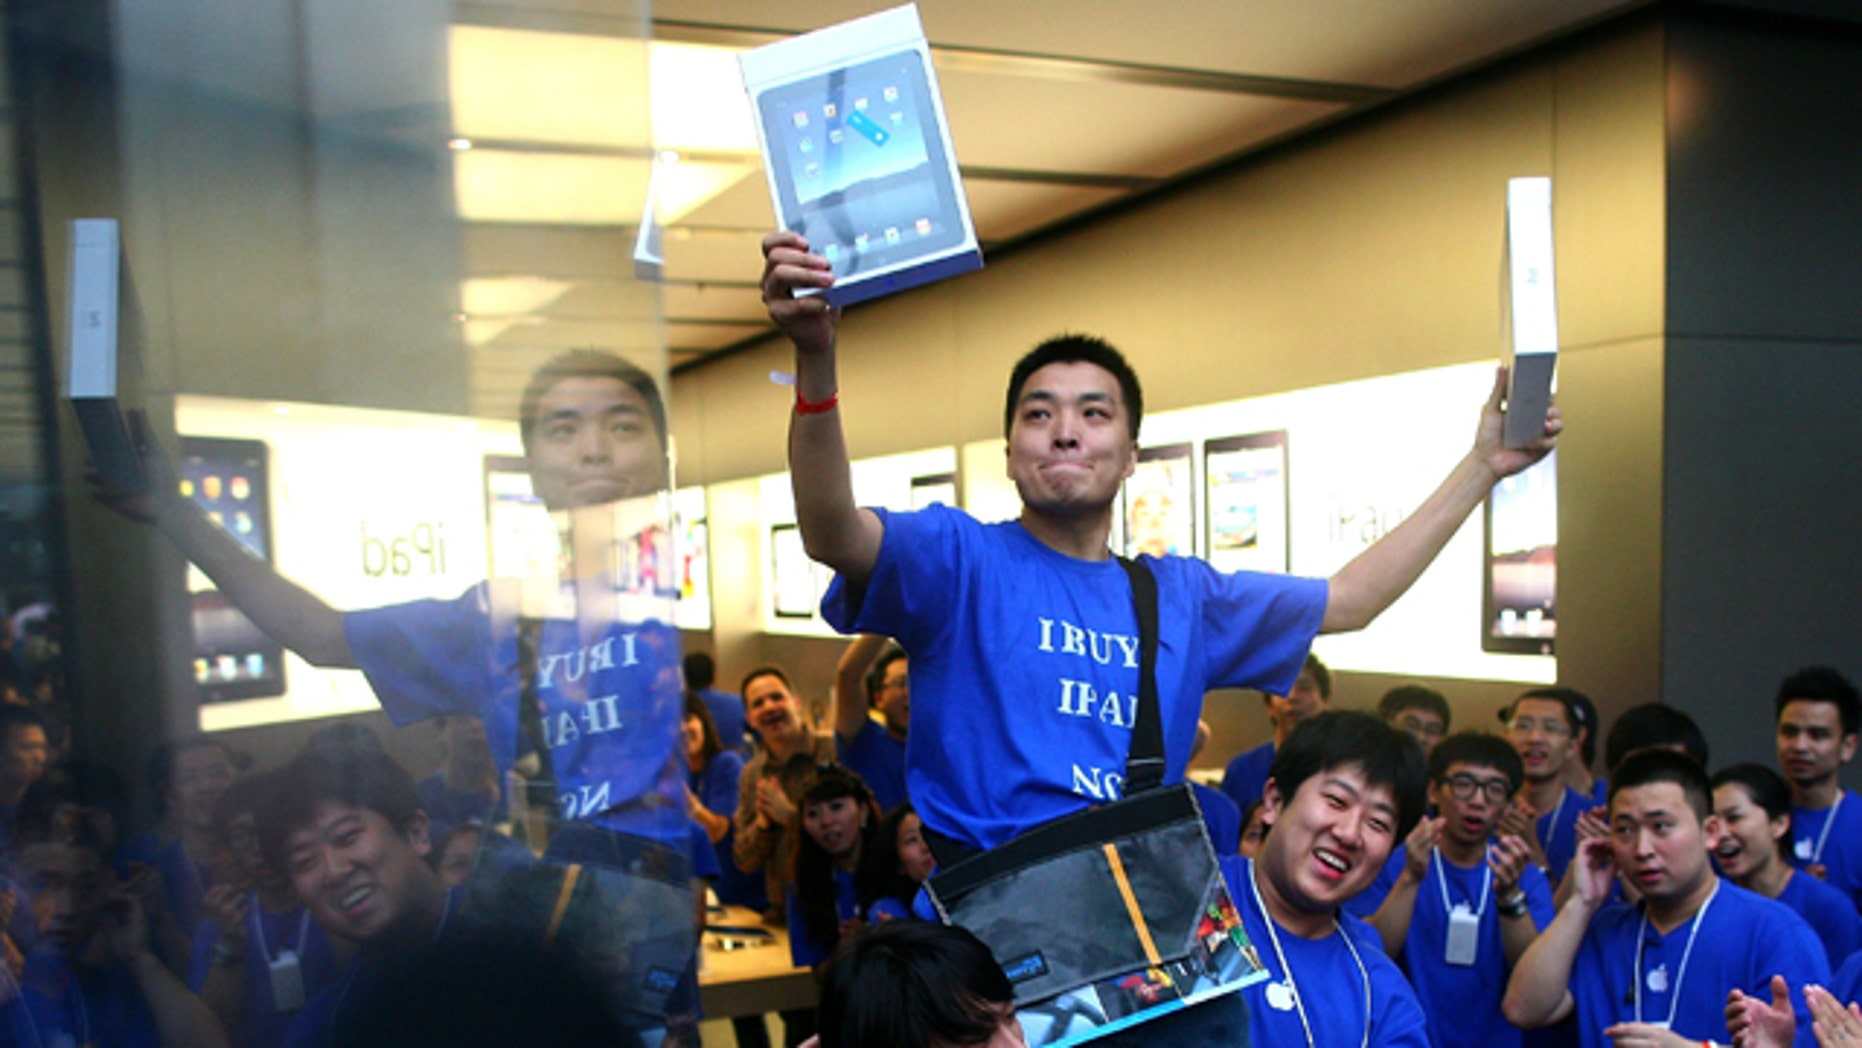 Han Ziwen holds up his iPads while being carried out by store employees at the Apple flagship store in Beijing, China, Friday, Sept. 17, 2010. Han was one of the first customers to officially buy an iPad in mainland China after lining up for more than 60 hours.